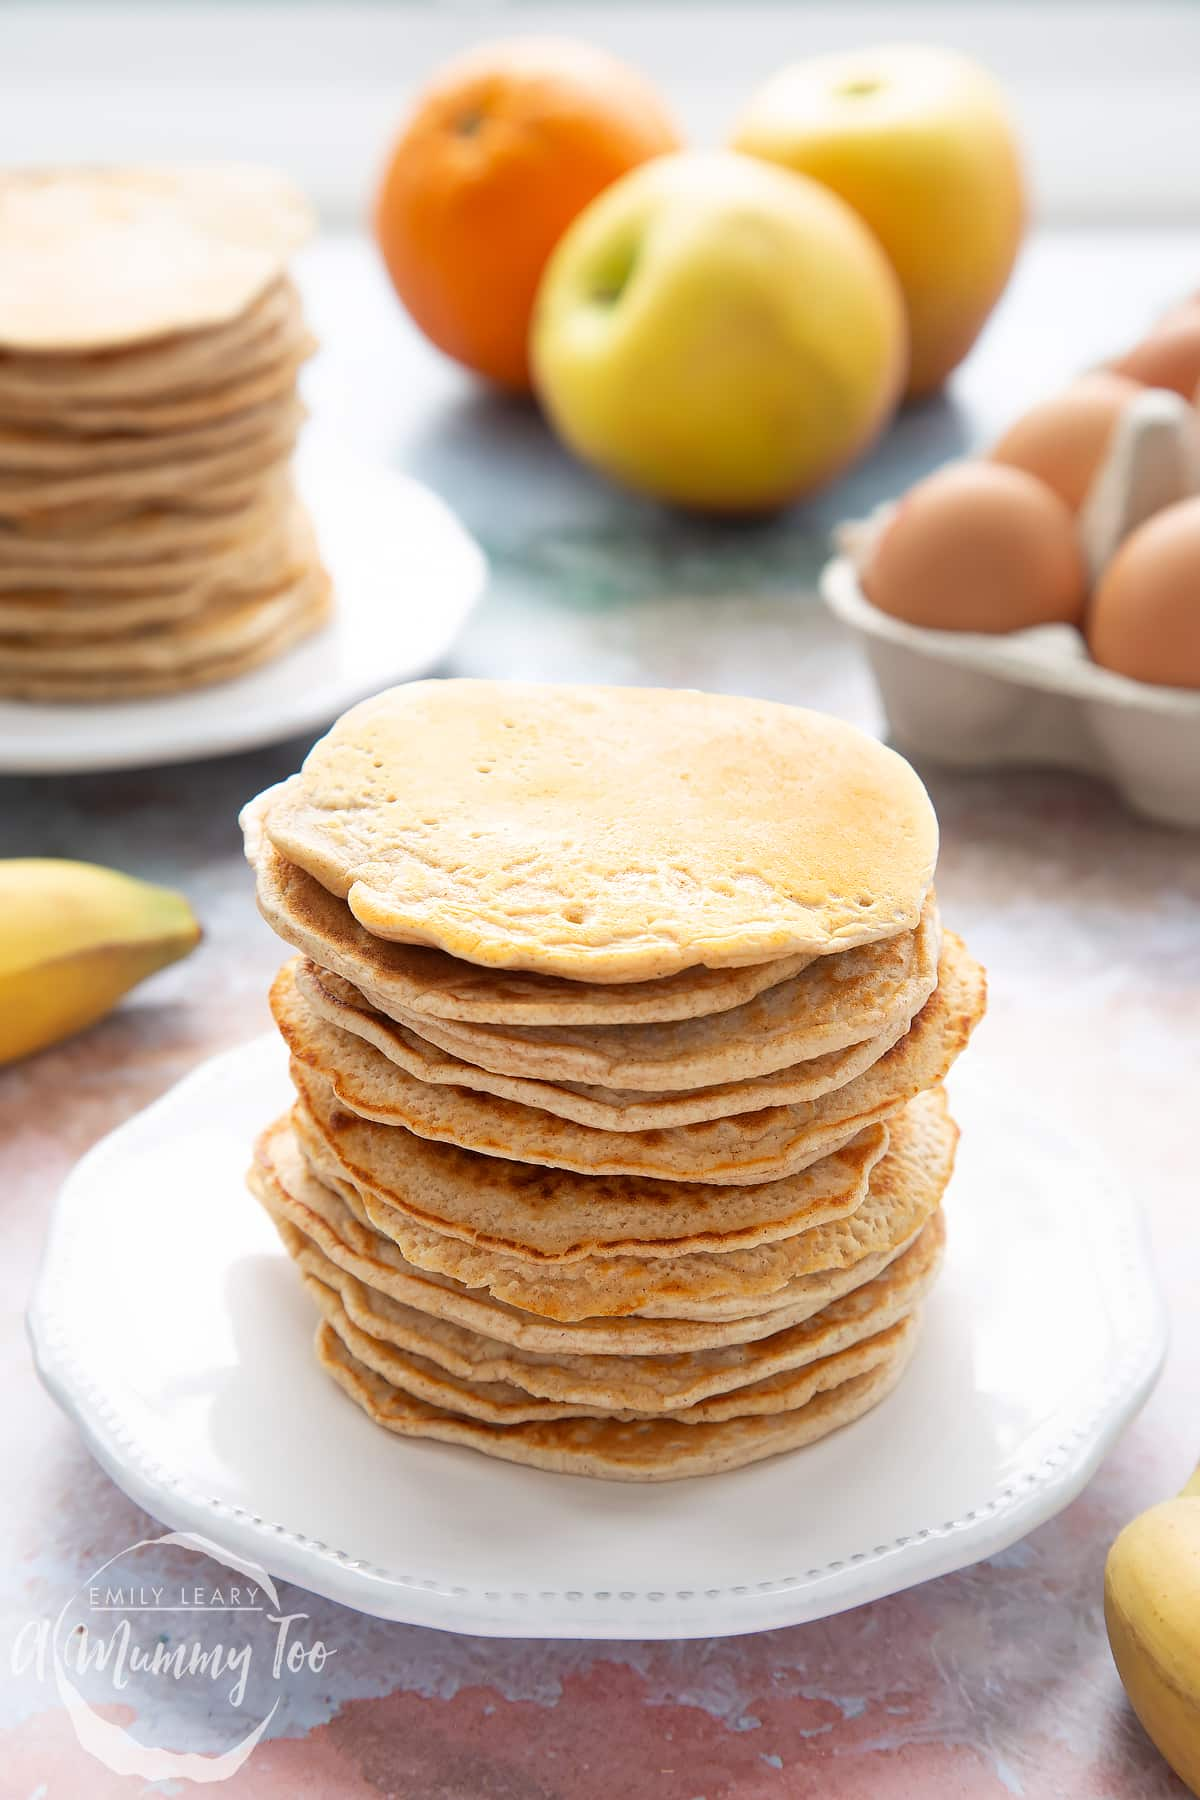 Overhead shot of a pancake stack on a white plate with the A Mummy Too logo in the corner